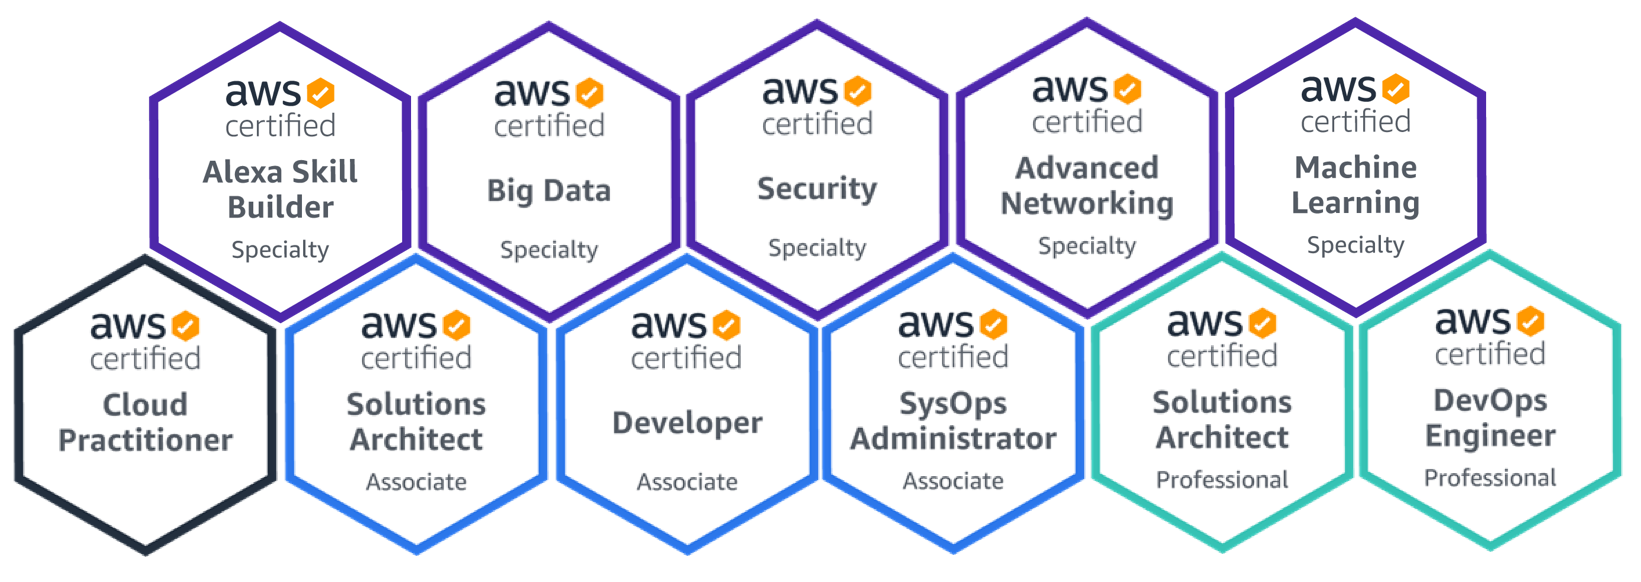 aws certification level right which benefits foundation